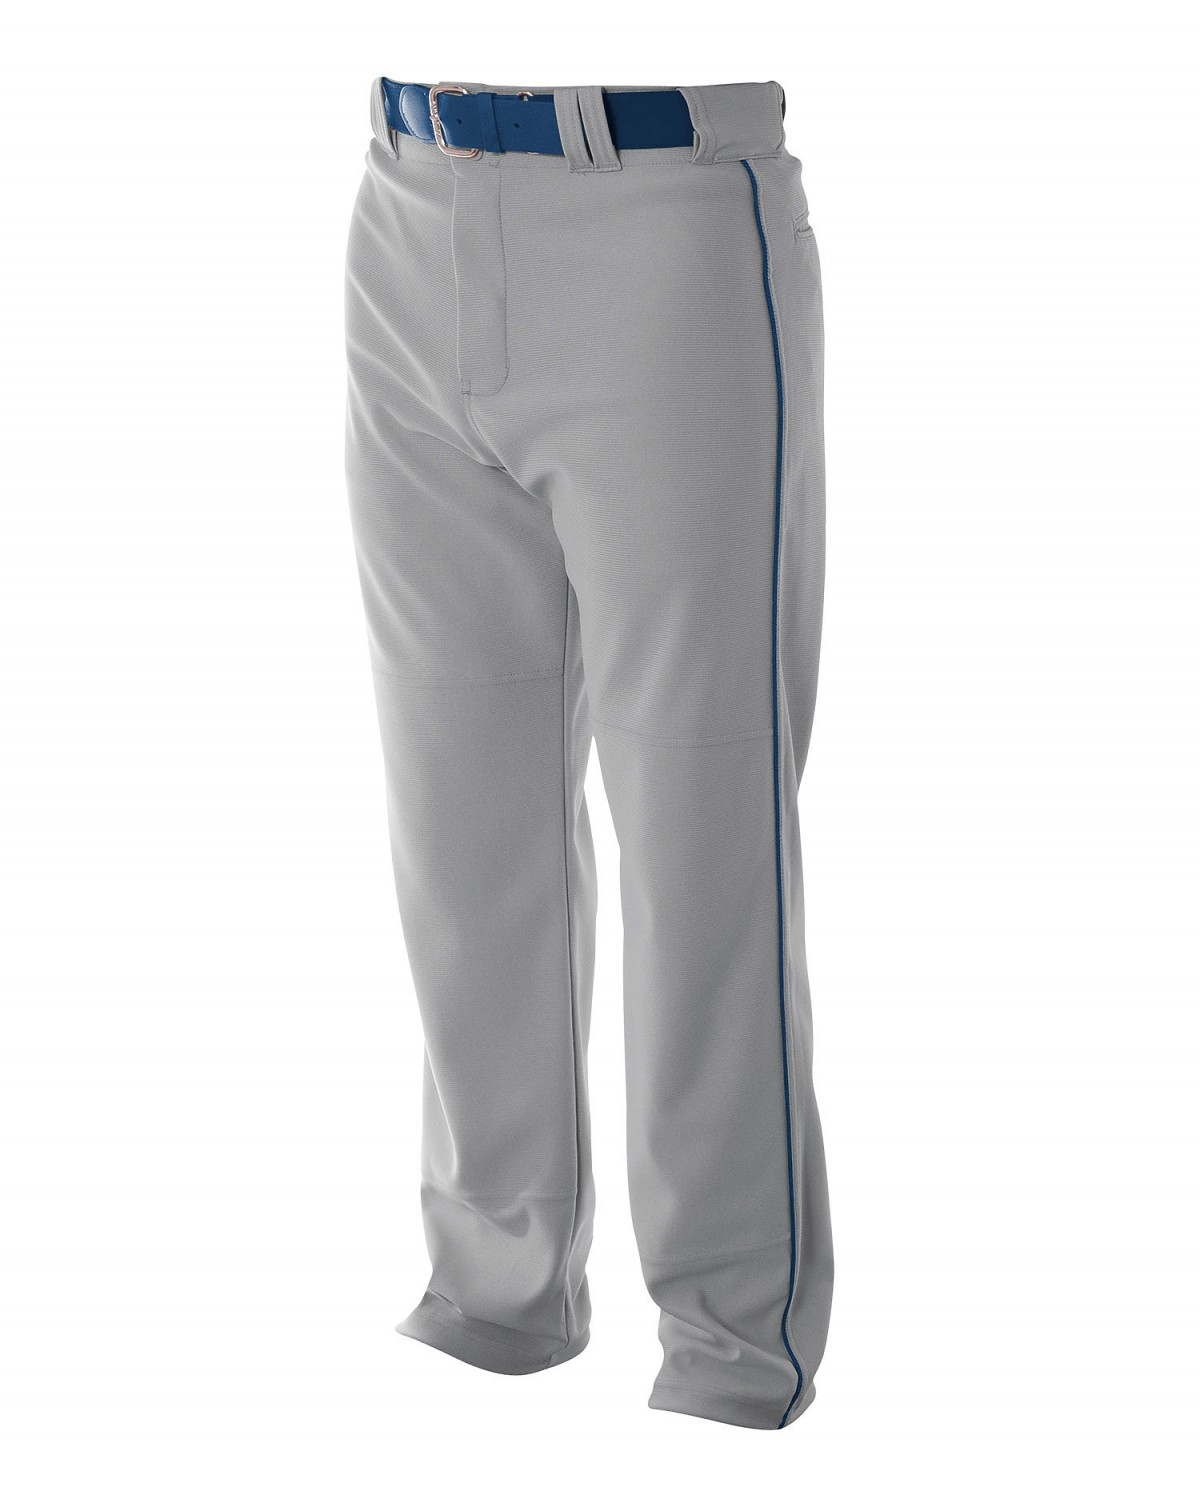 BG2126 Badger Sport NAVY/WHITE